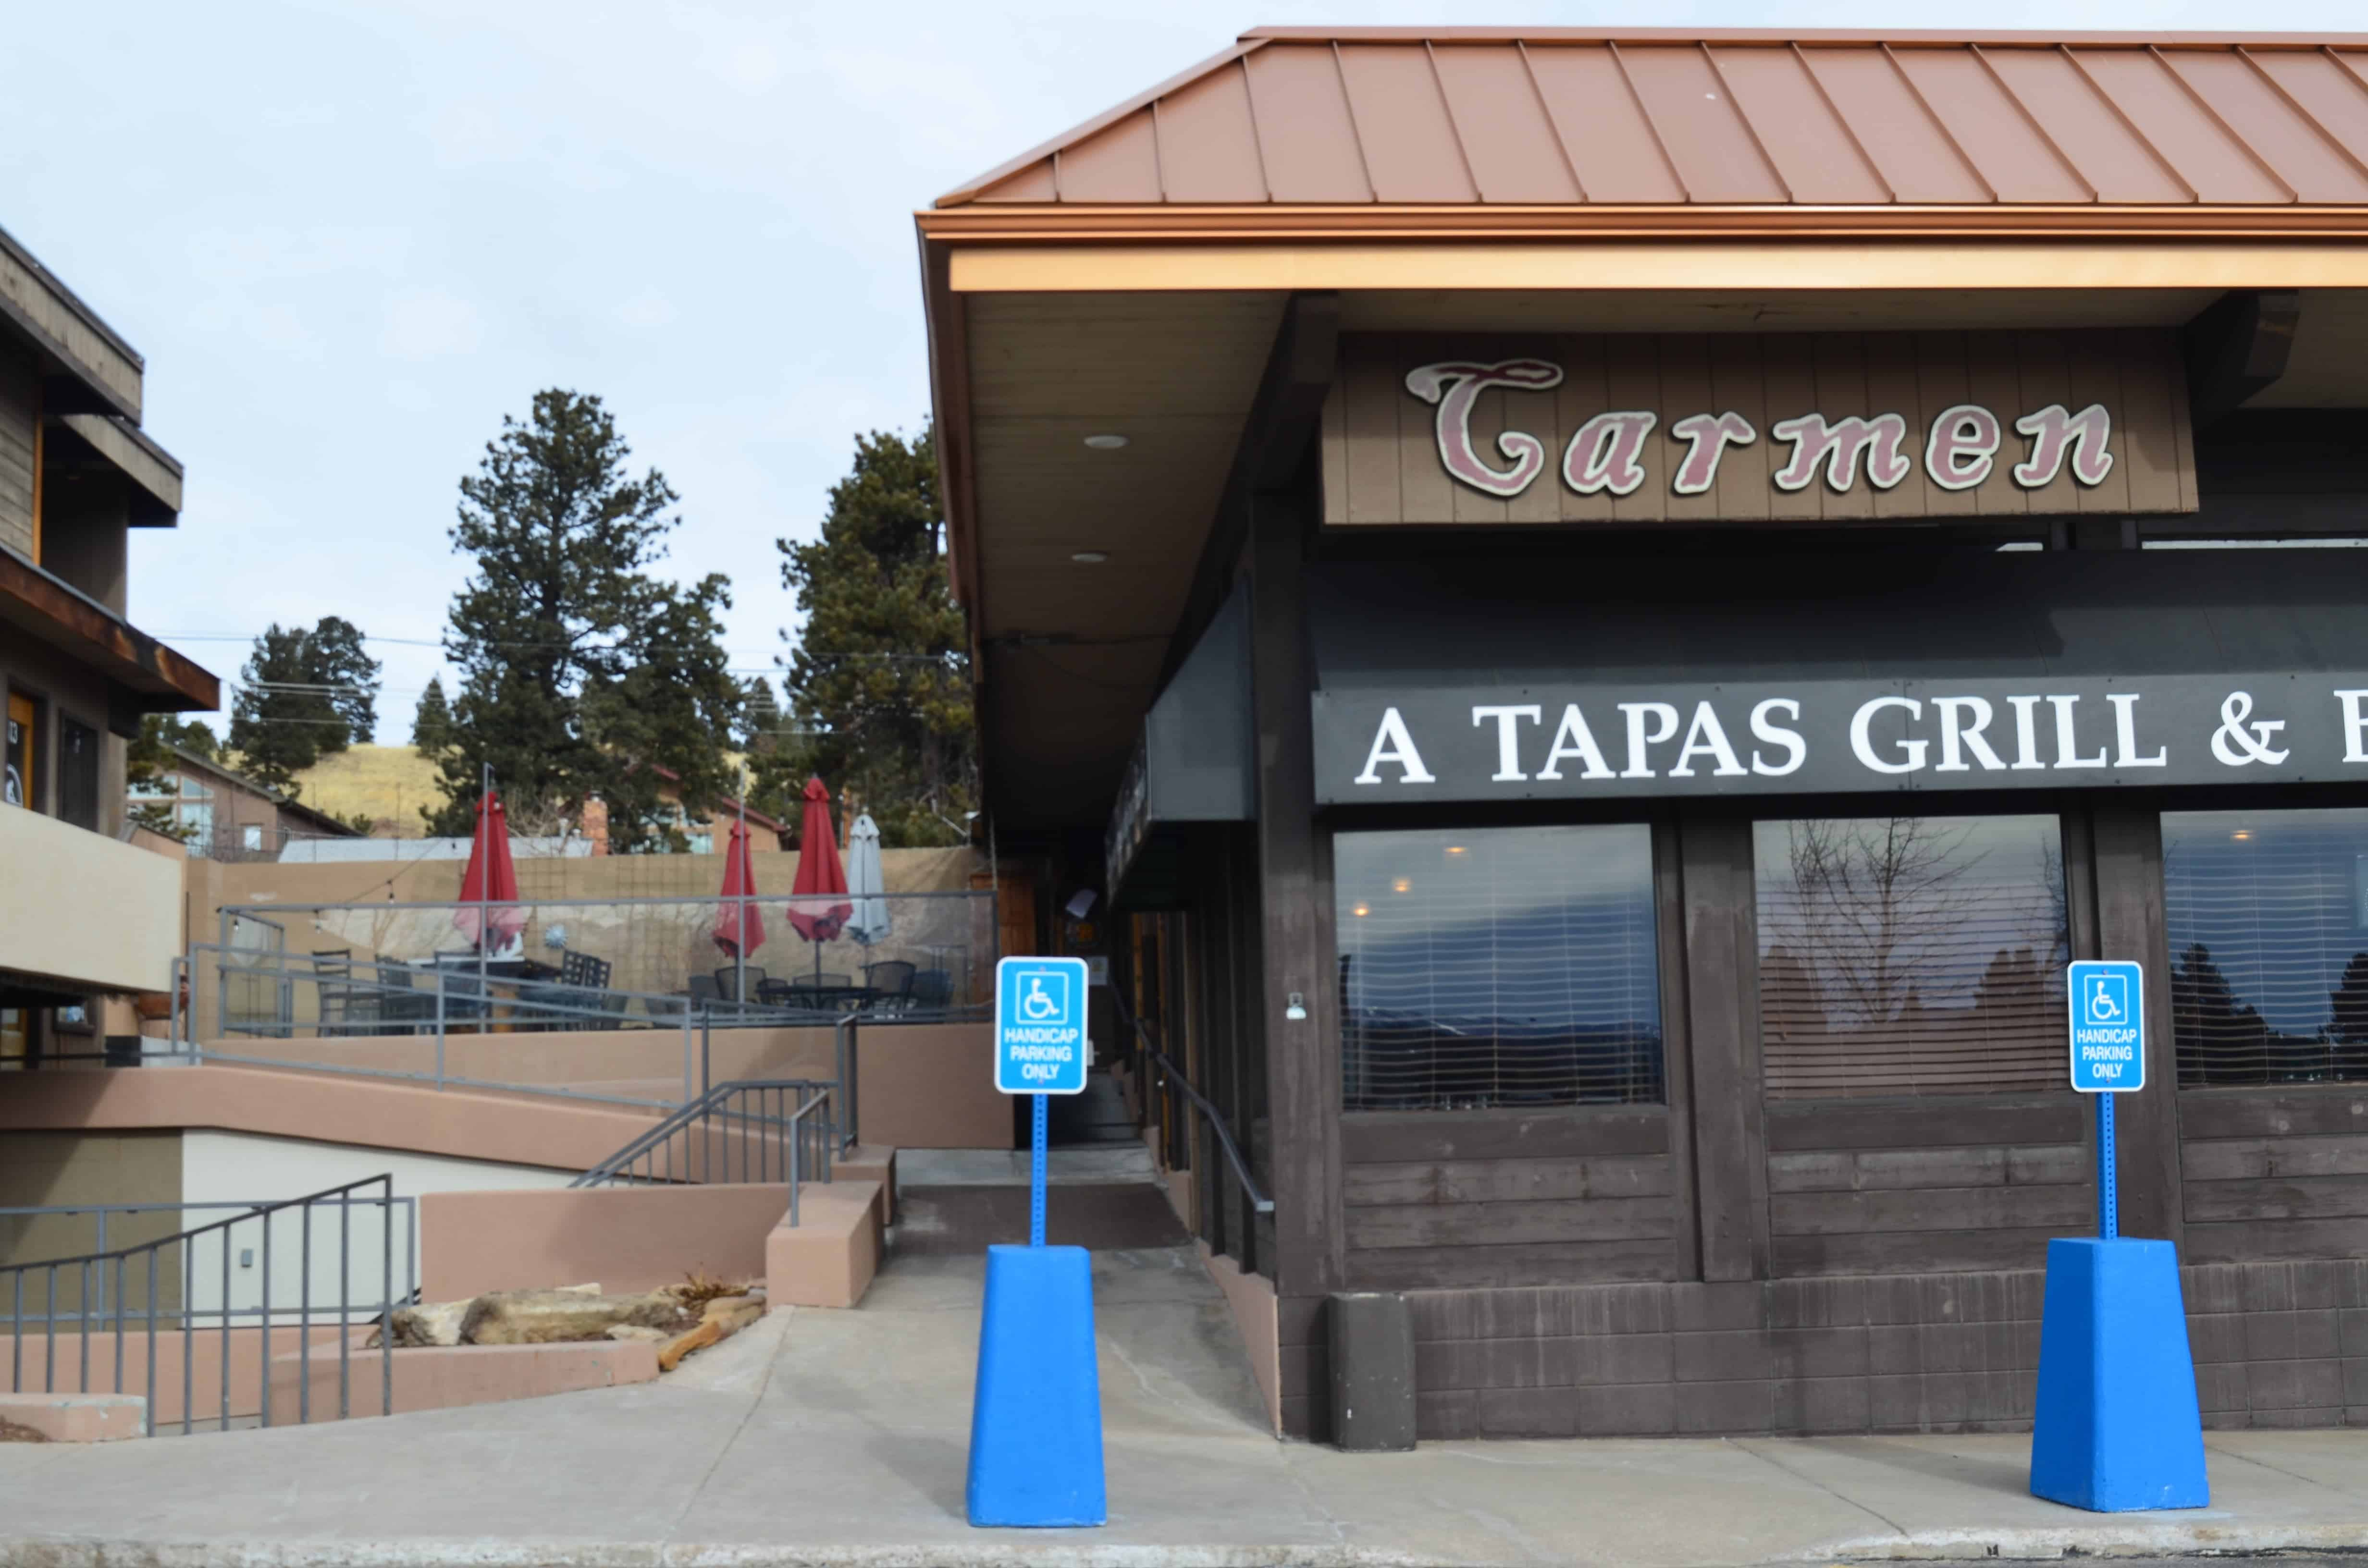 Carmen, A Tapas Grill and Bar is a popular choice for couples who went out for a date because it is located right next to the Gold Hill Theaters. A perfect place for dinner after watching a good movie.